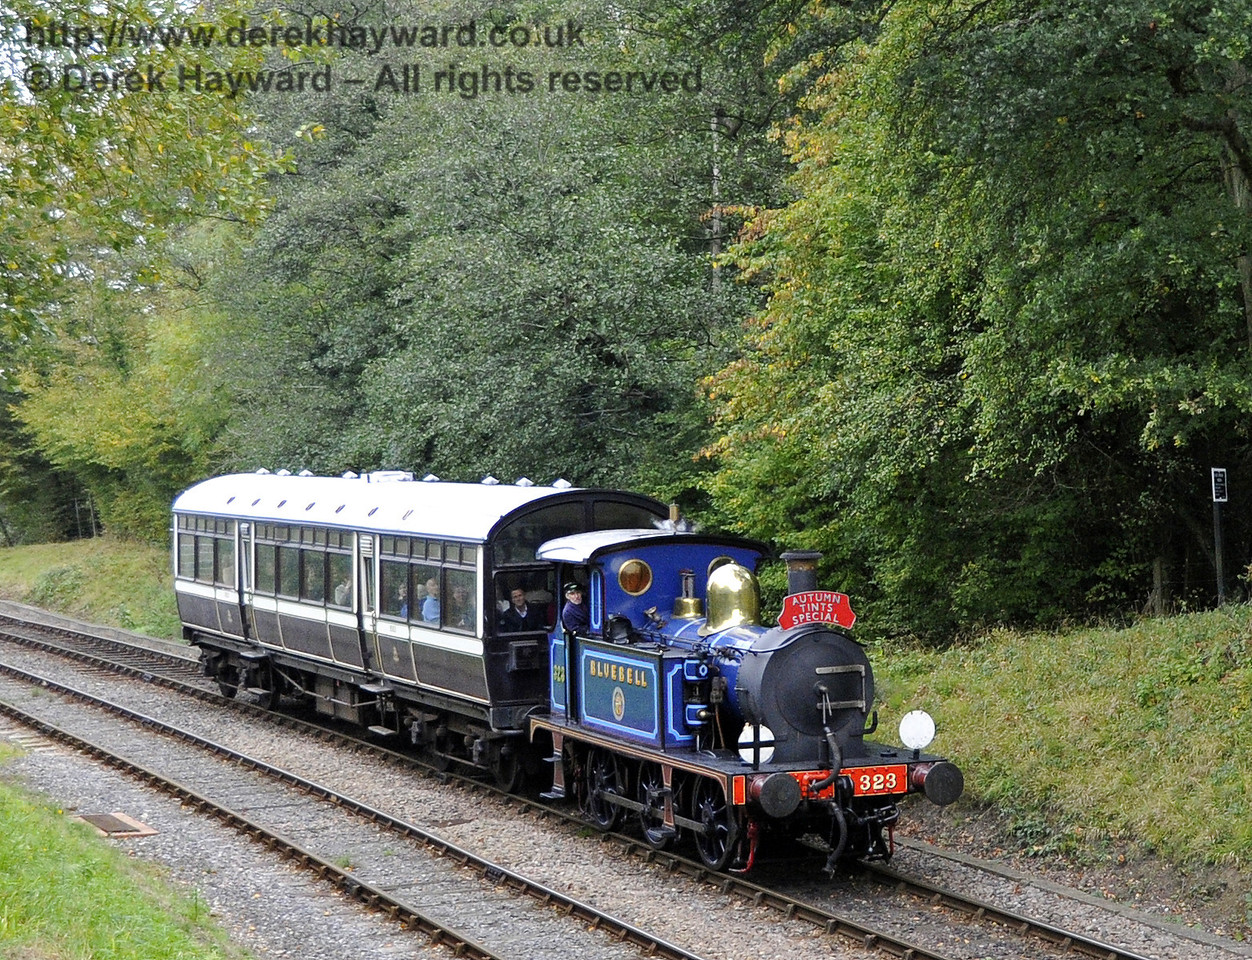 323 Bluebell approaches Leamland Bridge with an Autumn Tints train.  21.10.2011  2992